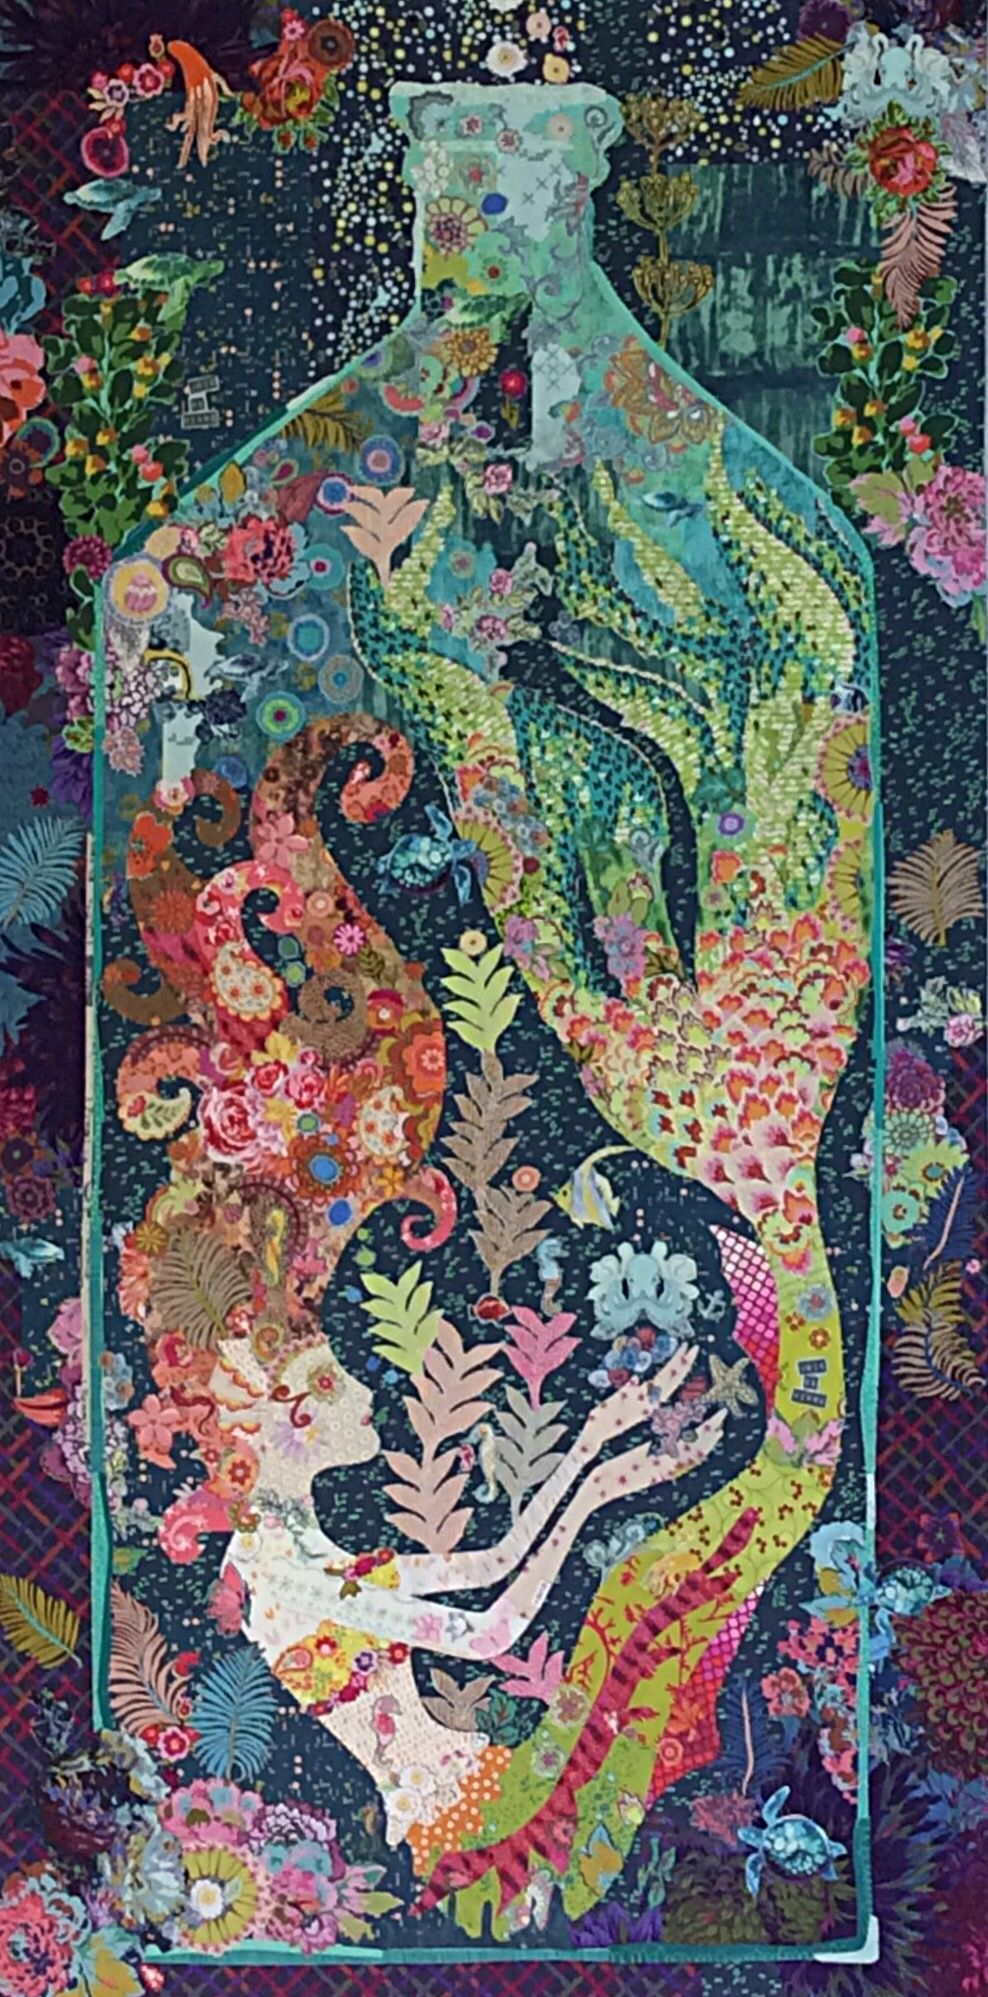 Quot Sirene Quot Mermaid In A Bottle Collage By Laura Heine